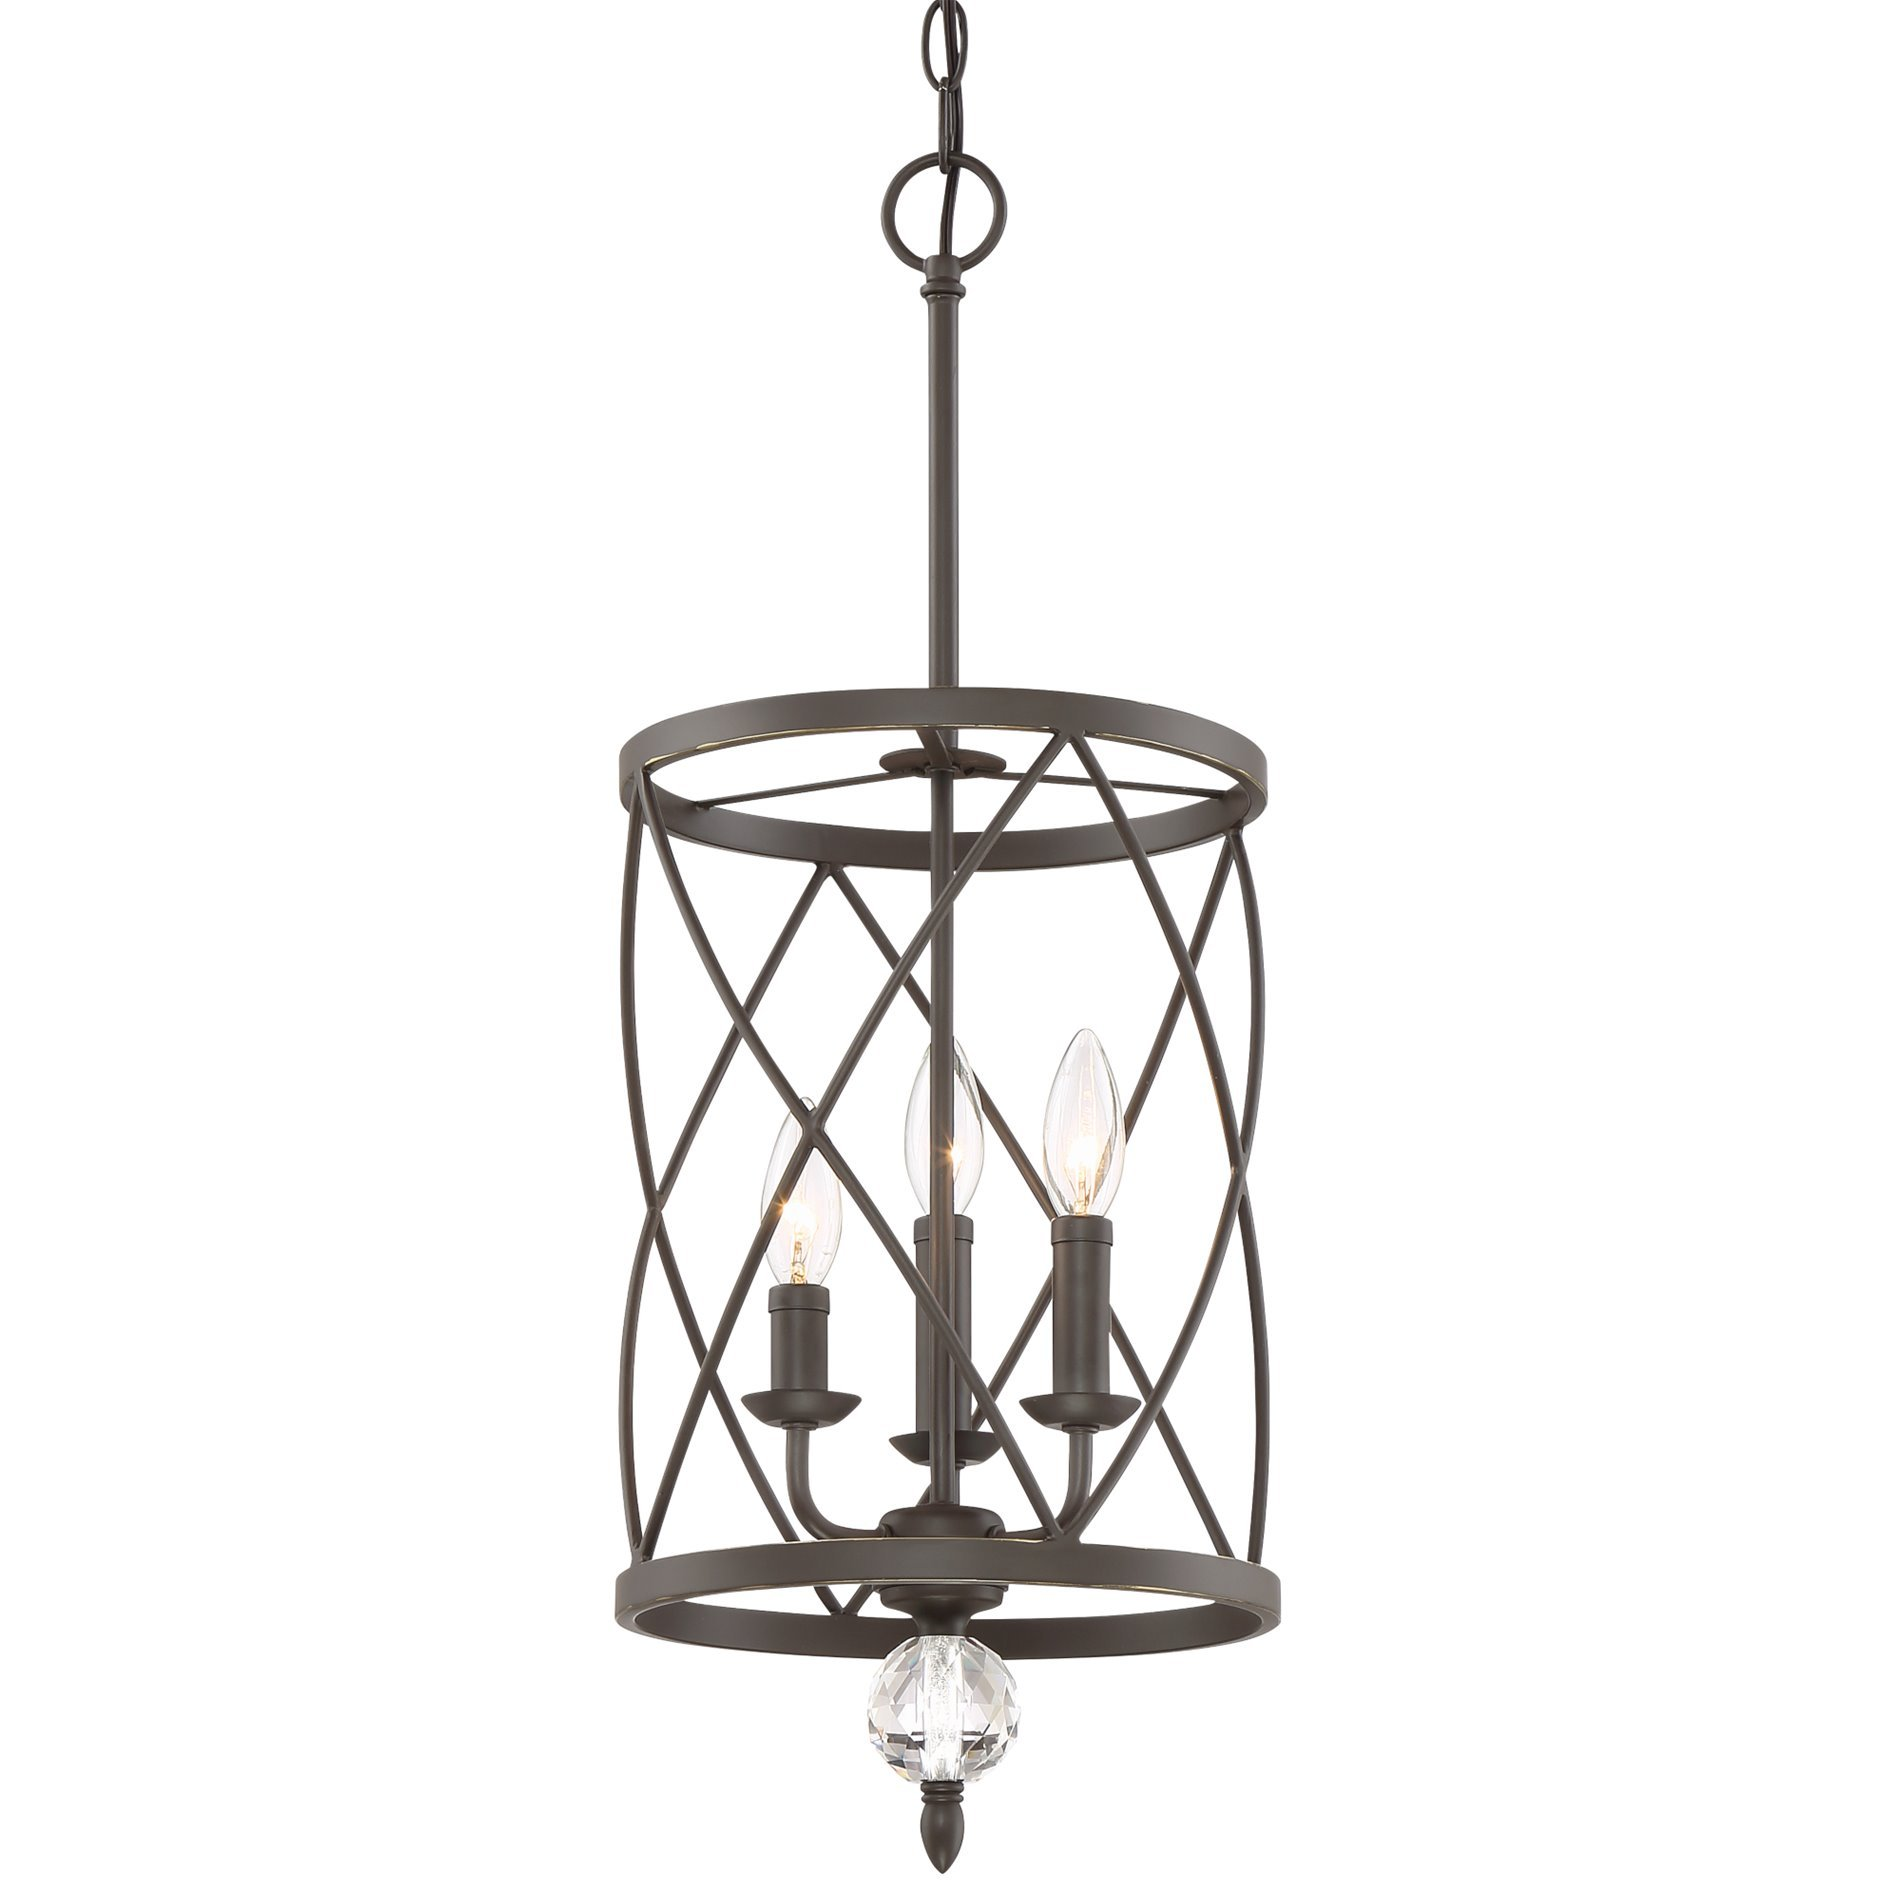 Kira Home Eleanor 13'' 3-Light Foyer Light Chandelier + Metal Shade, Oil-Rubbed Bronze Finish (Contains Minimal Blemishes/Inconsistencies)